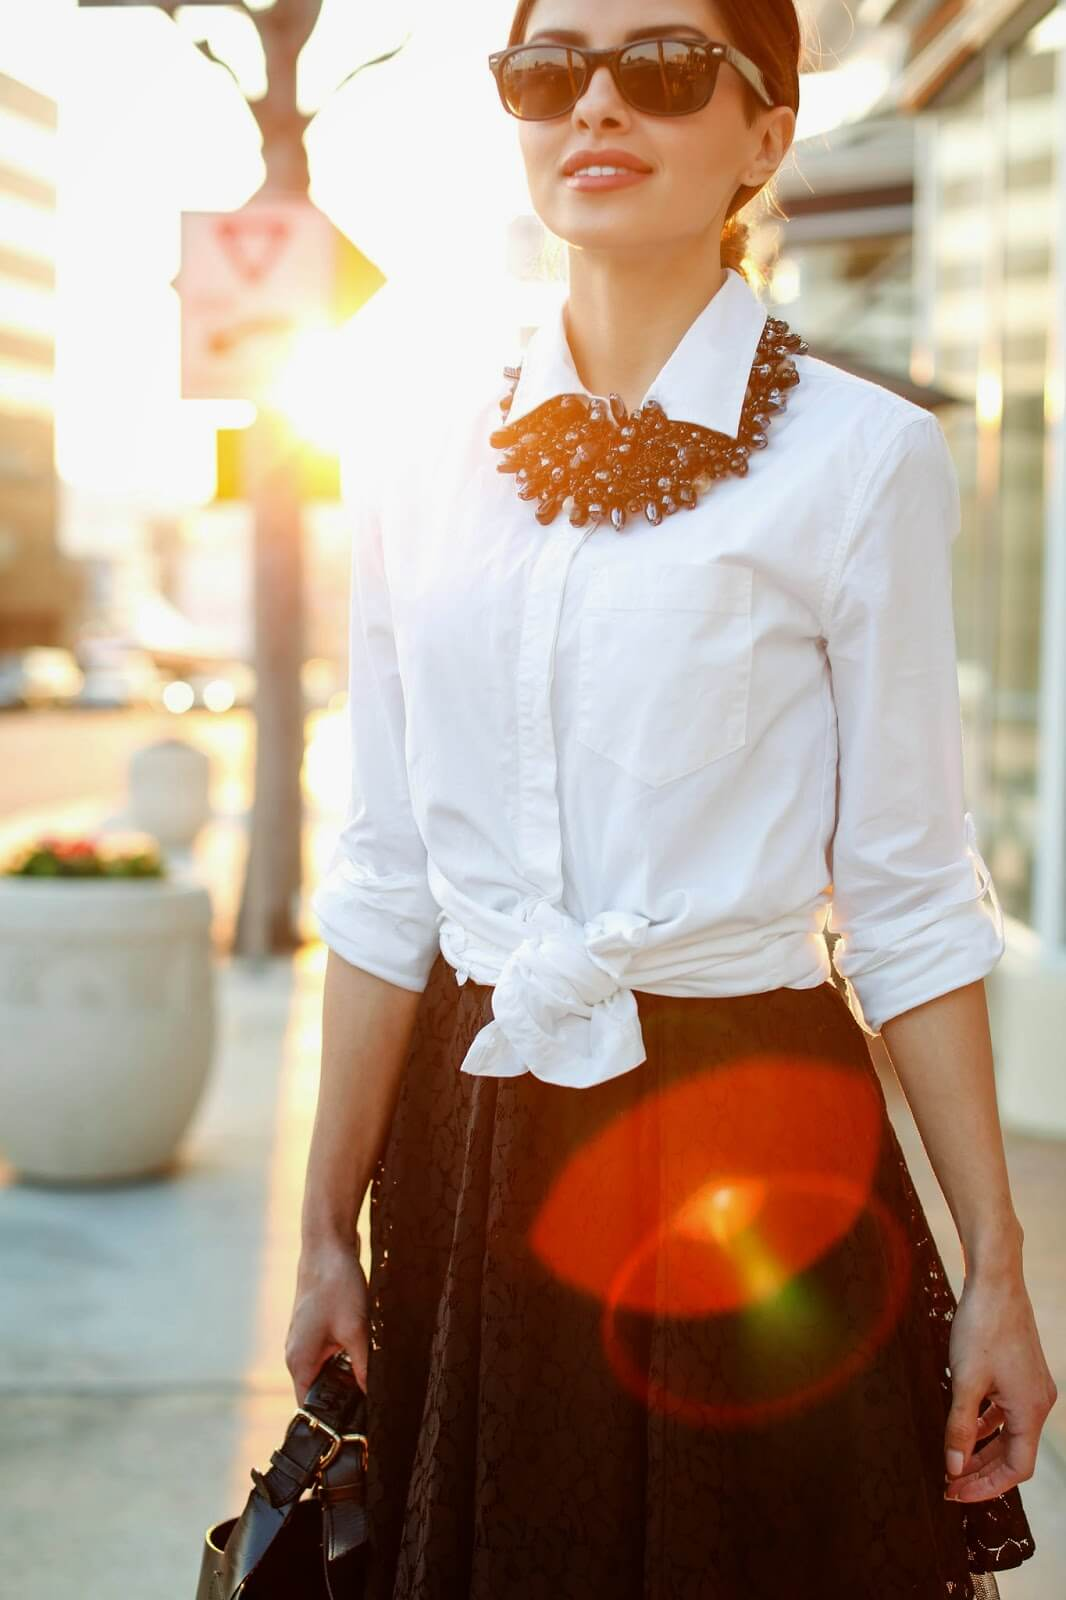 Smiling woman wearing a white shirt with a bow on the chest and massive black necklace made of shiny pendants